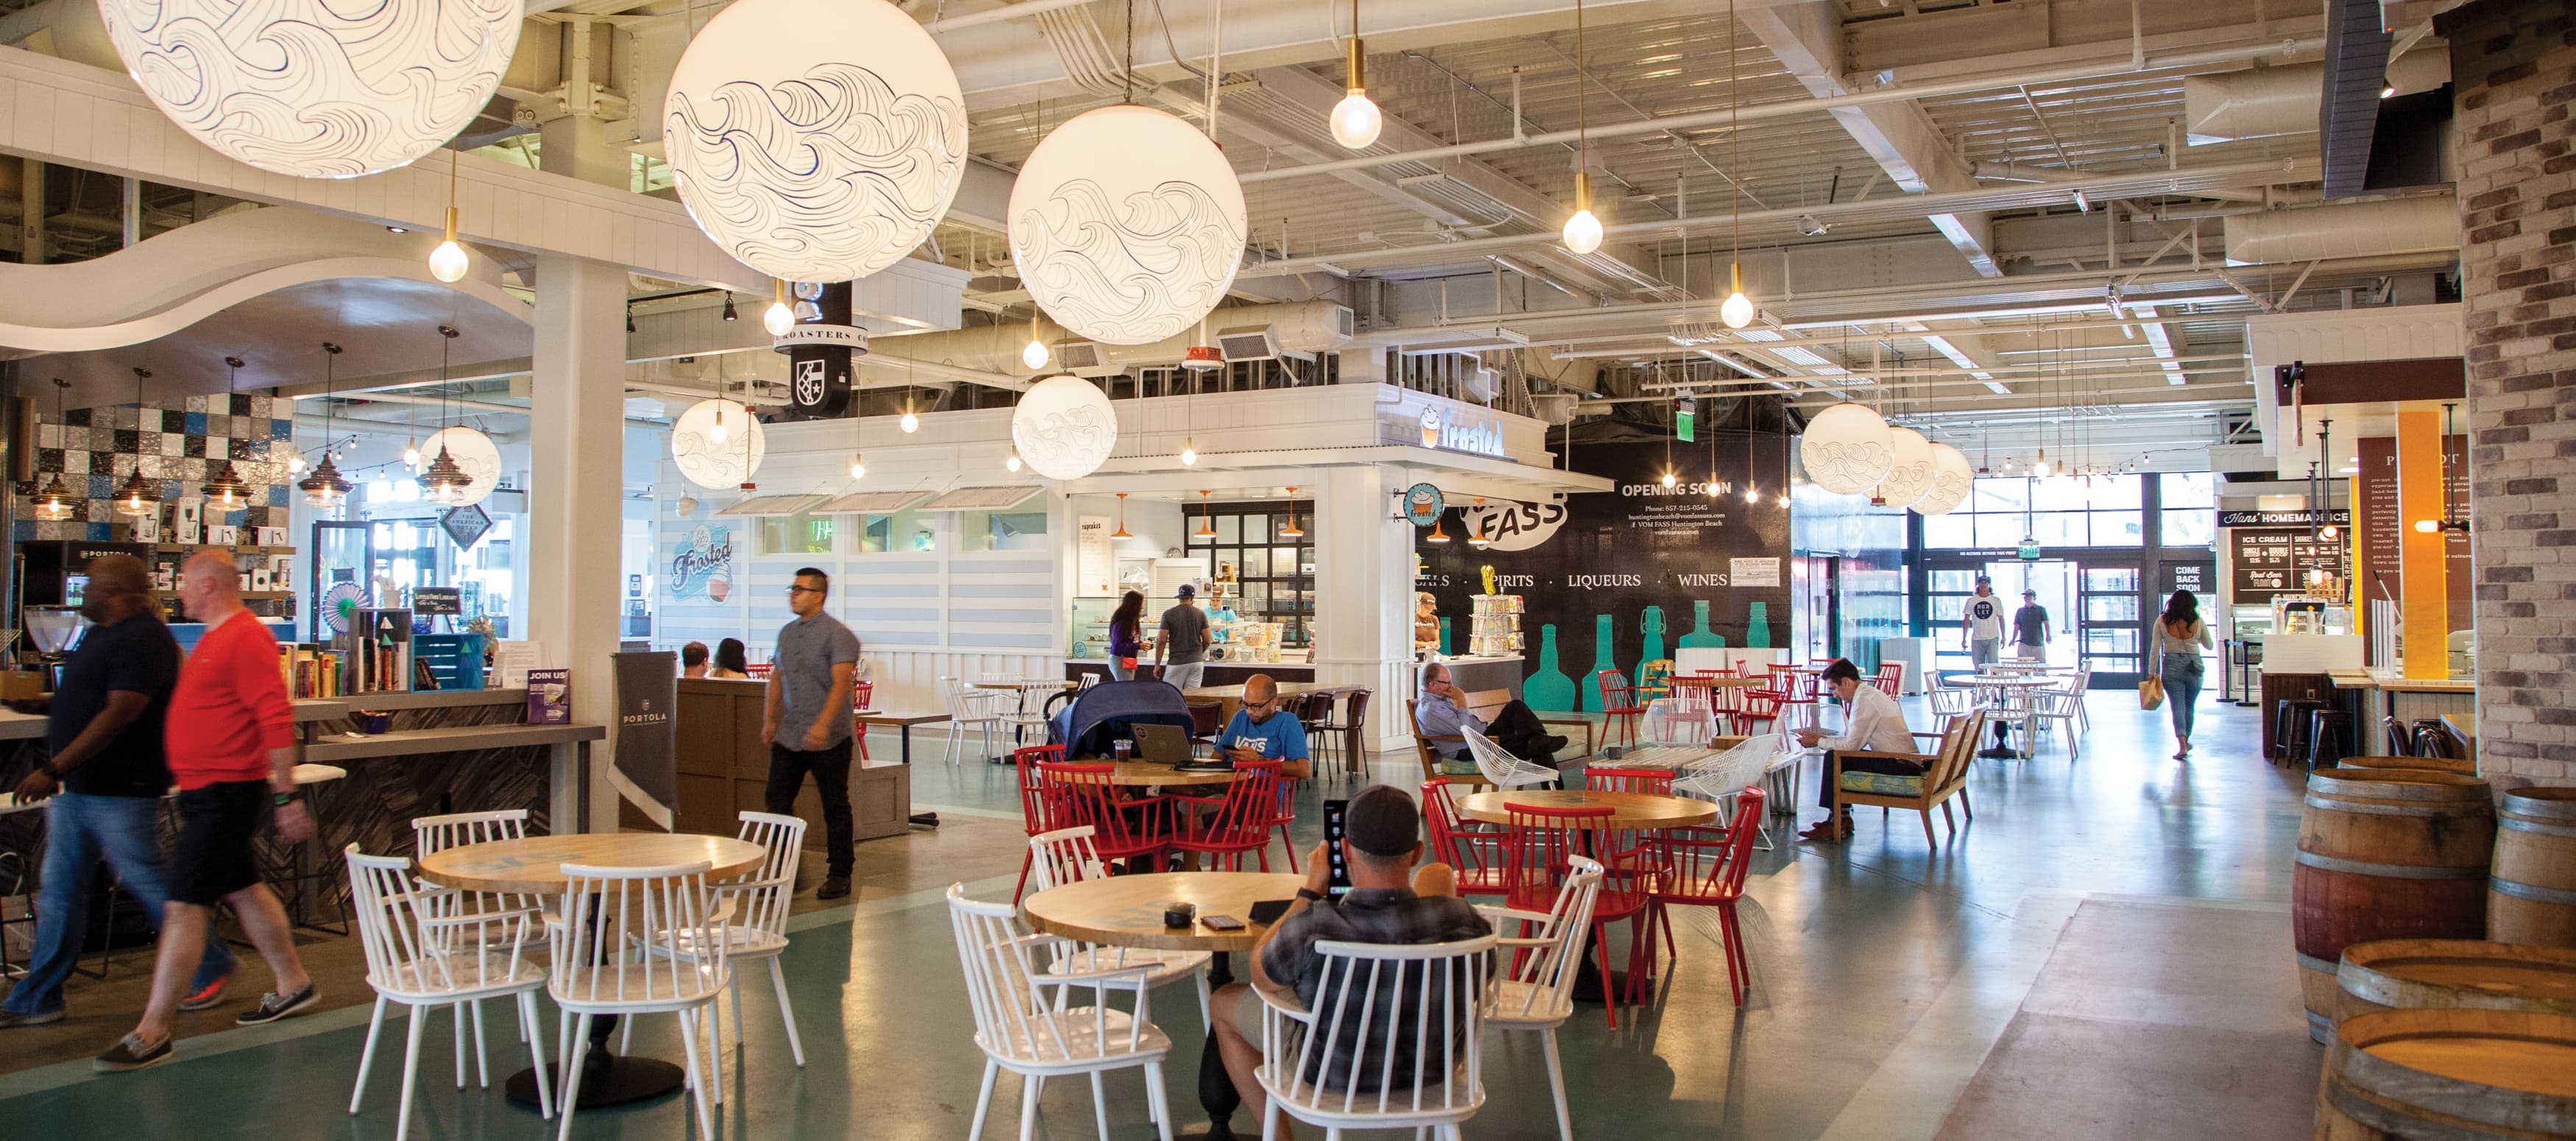 Interior of foodhall with people eating inside